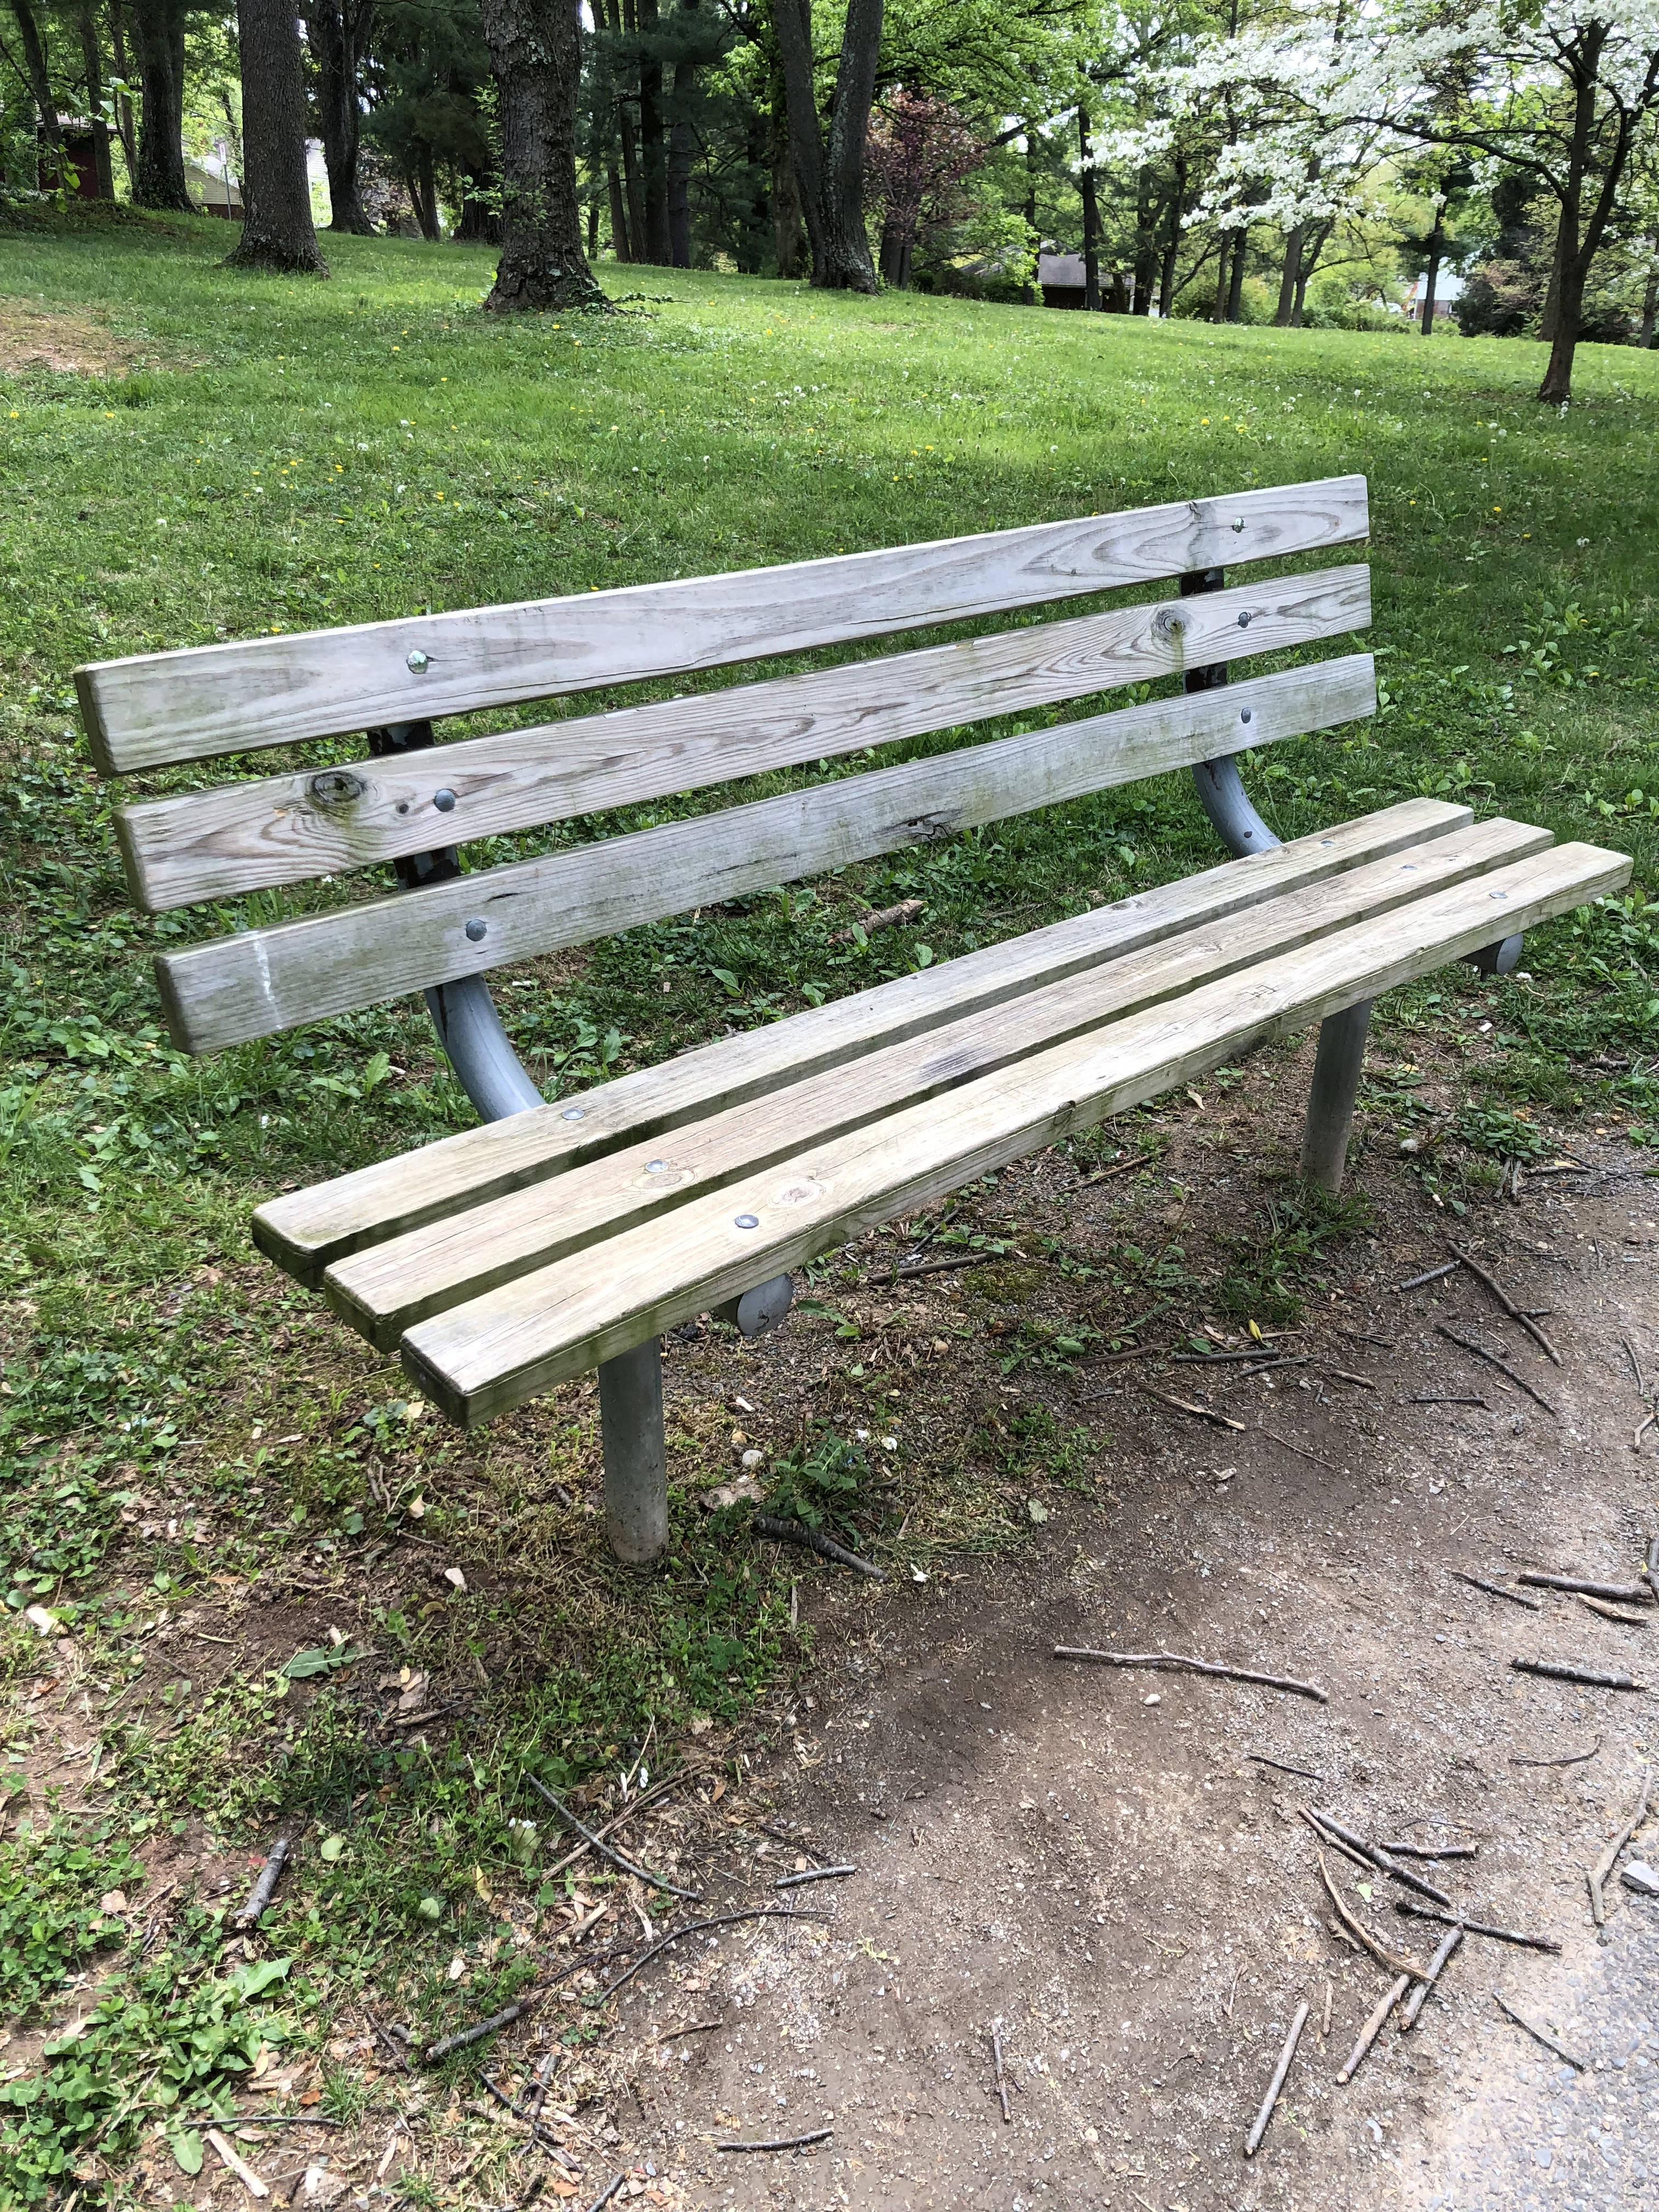 USE THIS BENCH